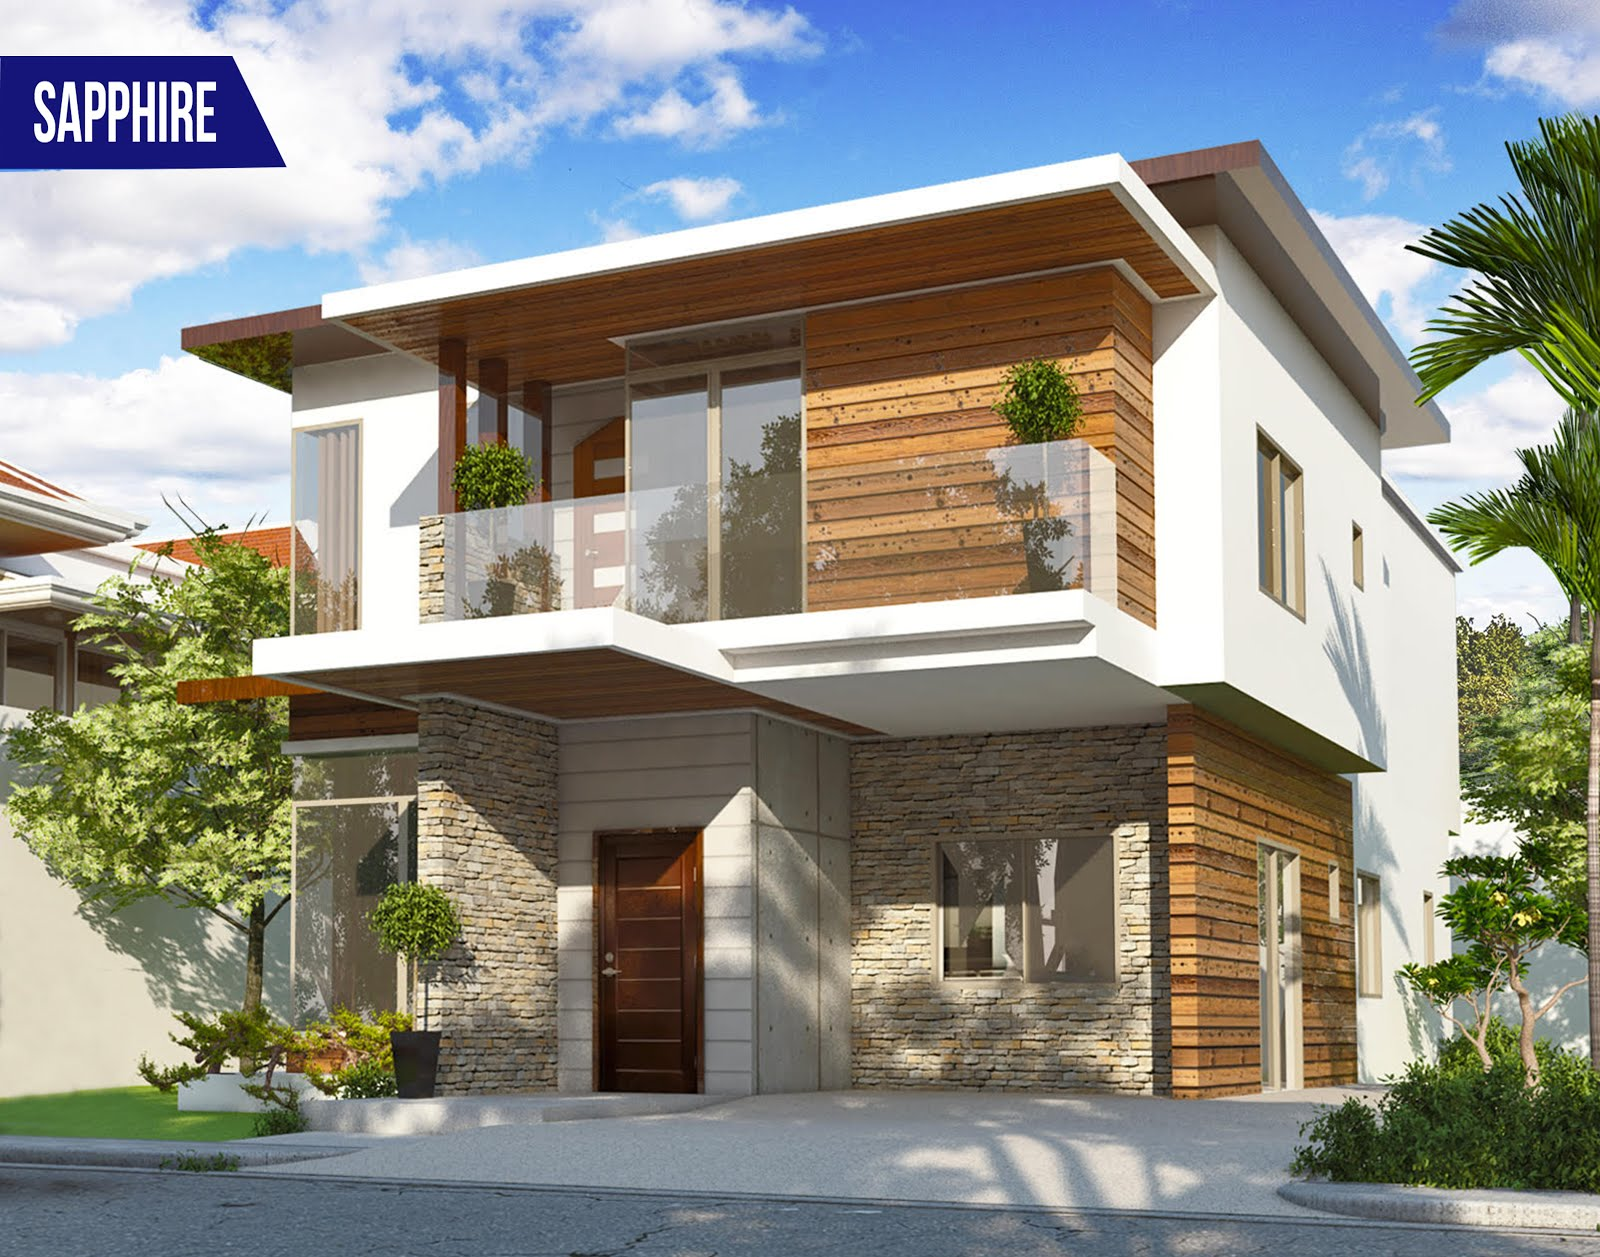 A smart philippine house builder the basics of latest for Latest building designs and plans